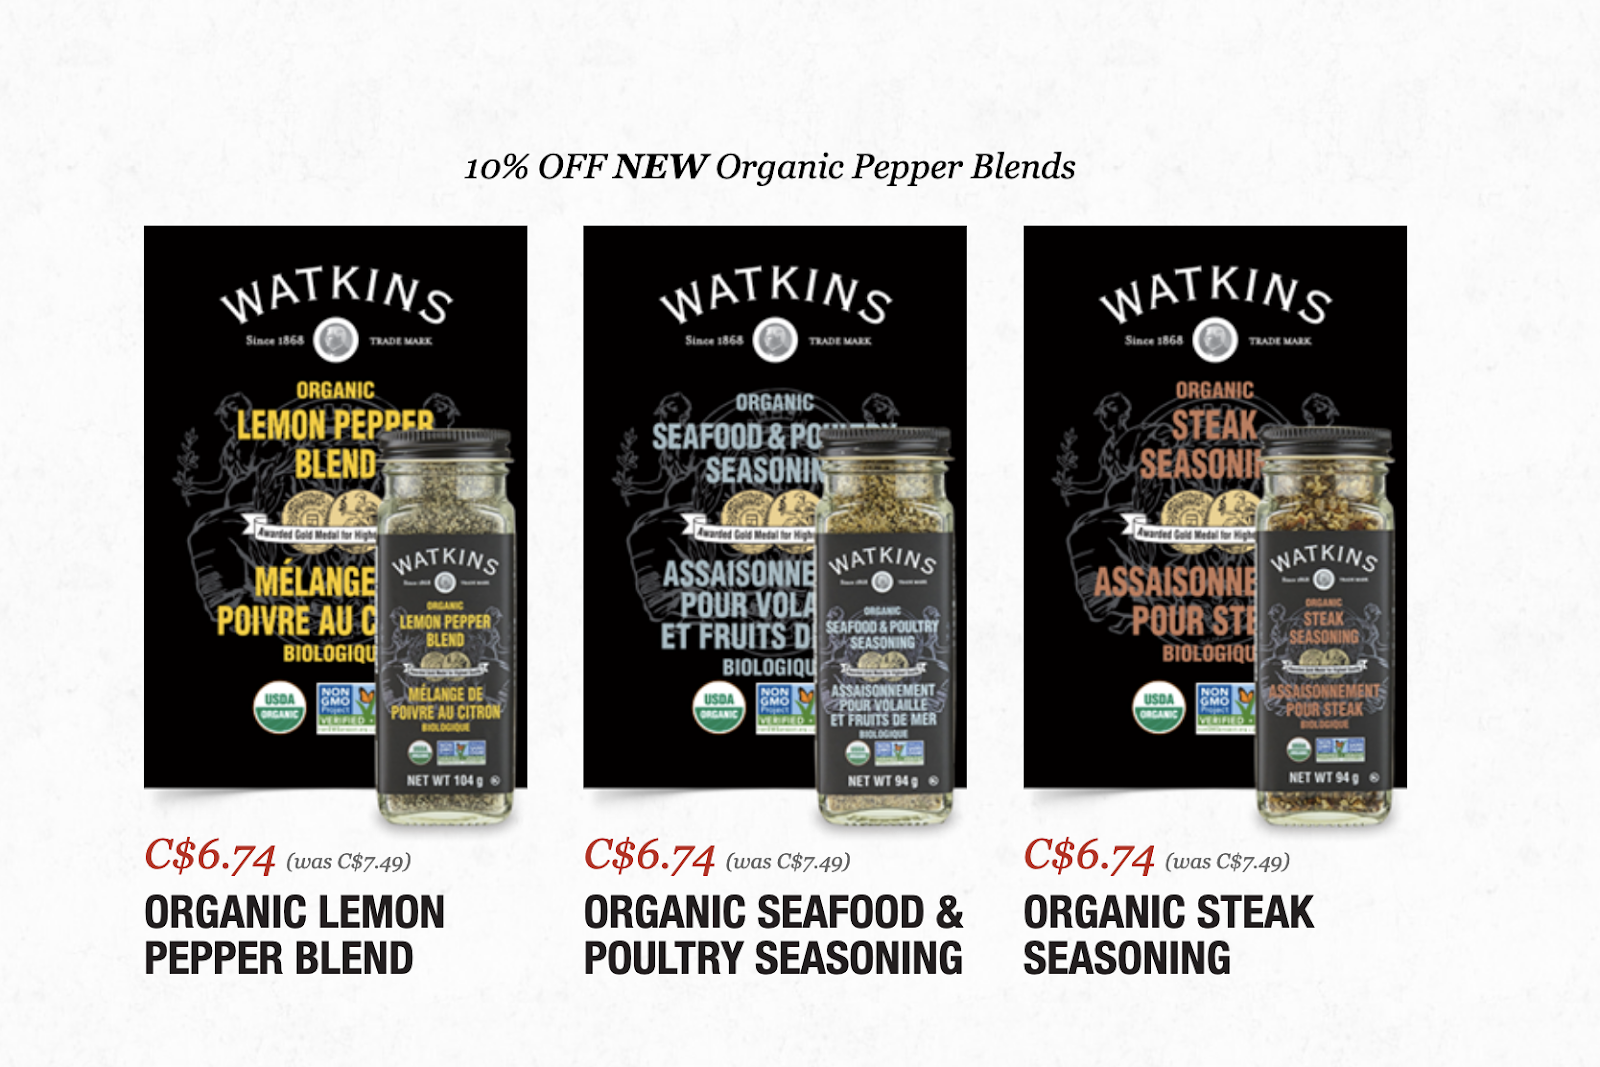 Watkins organic seasoning blends on sale April 2019